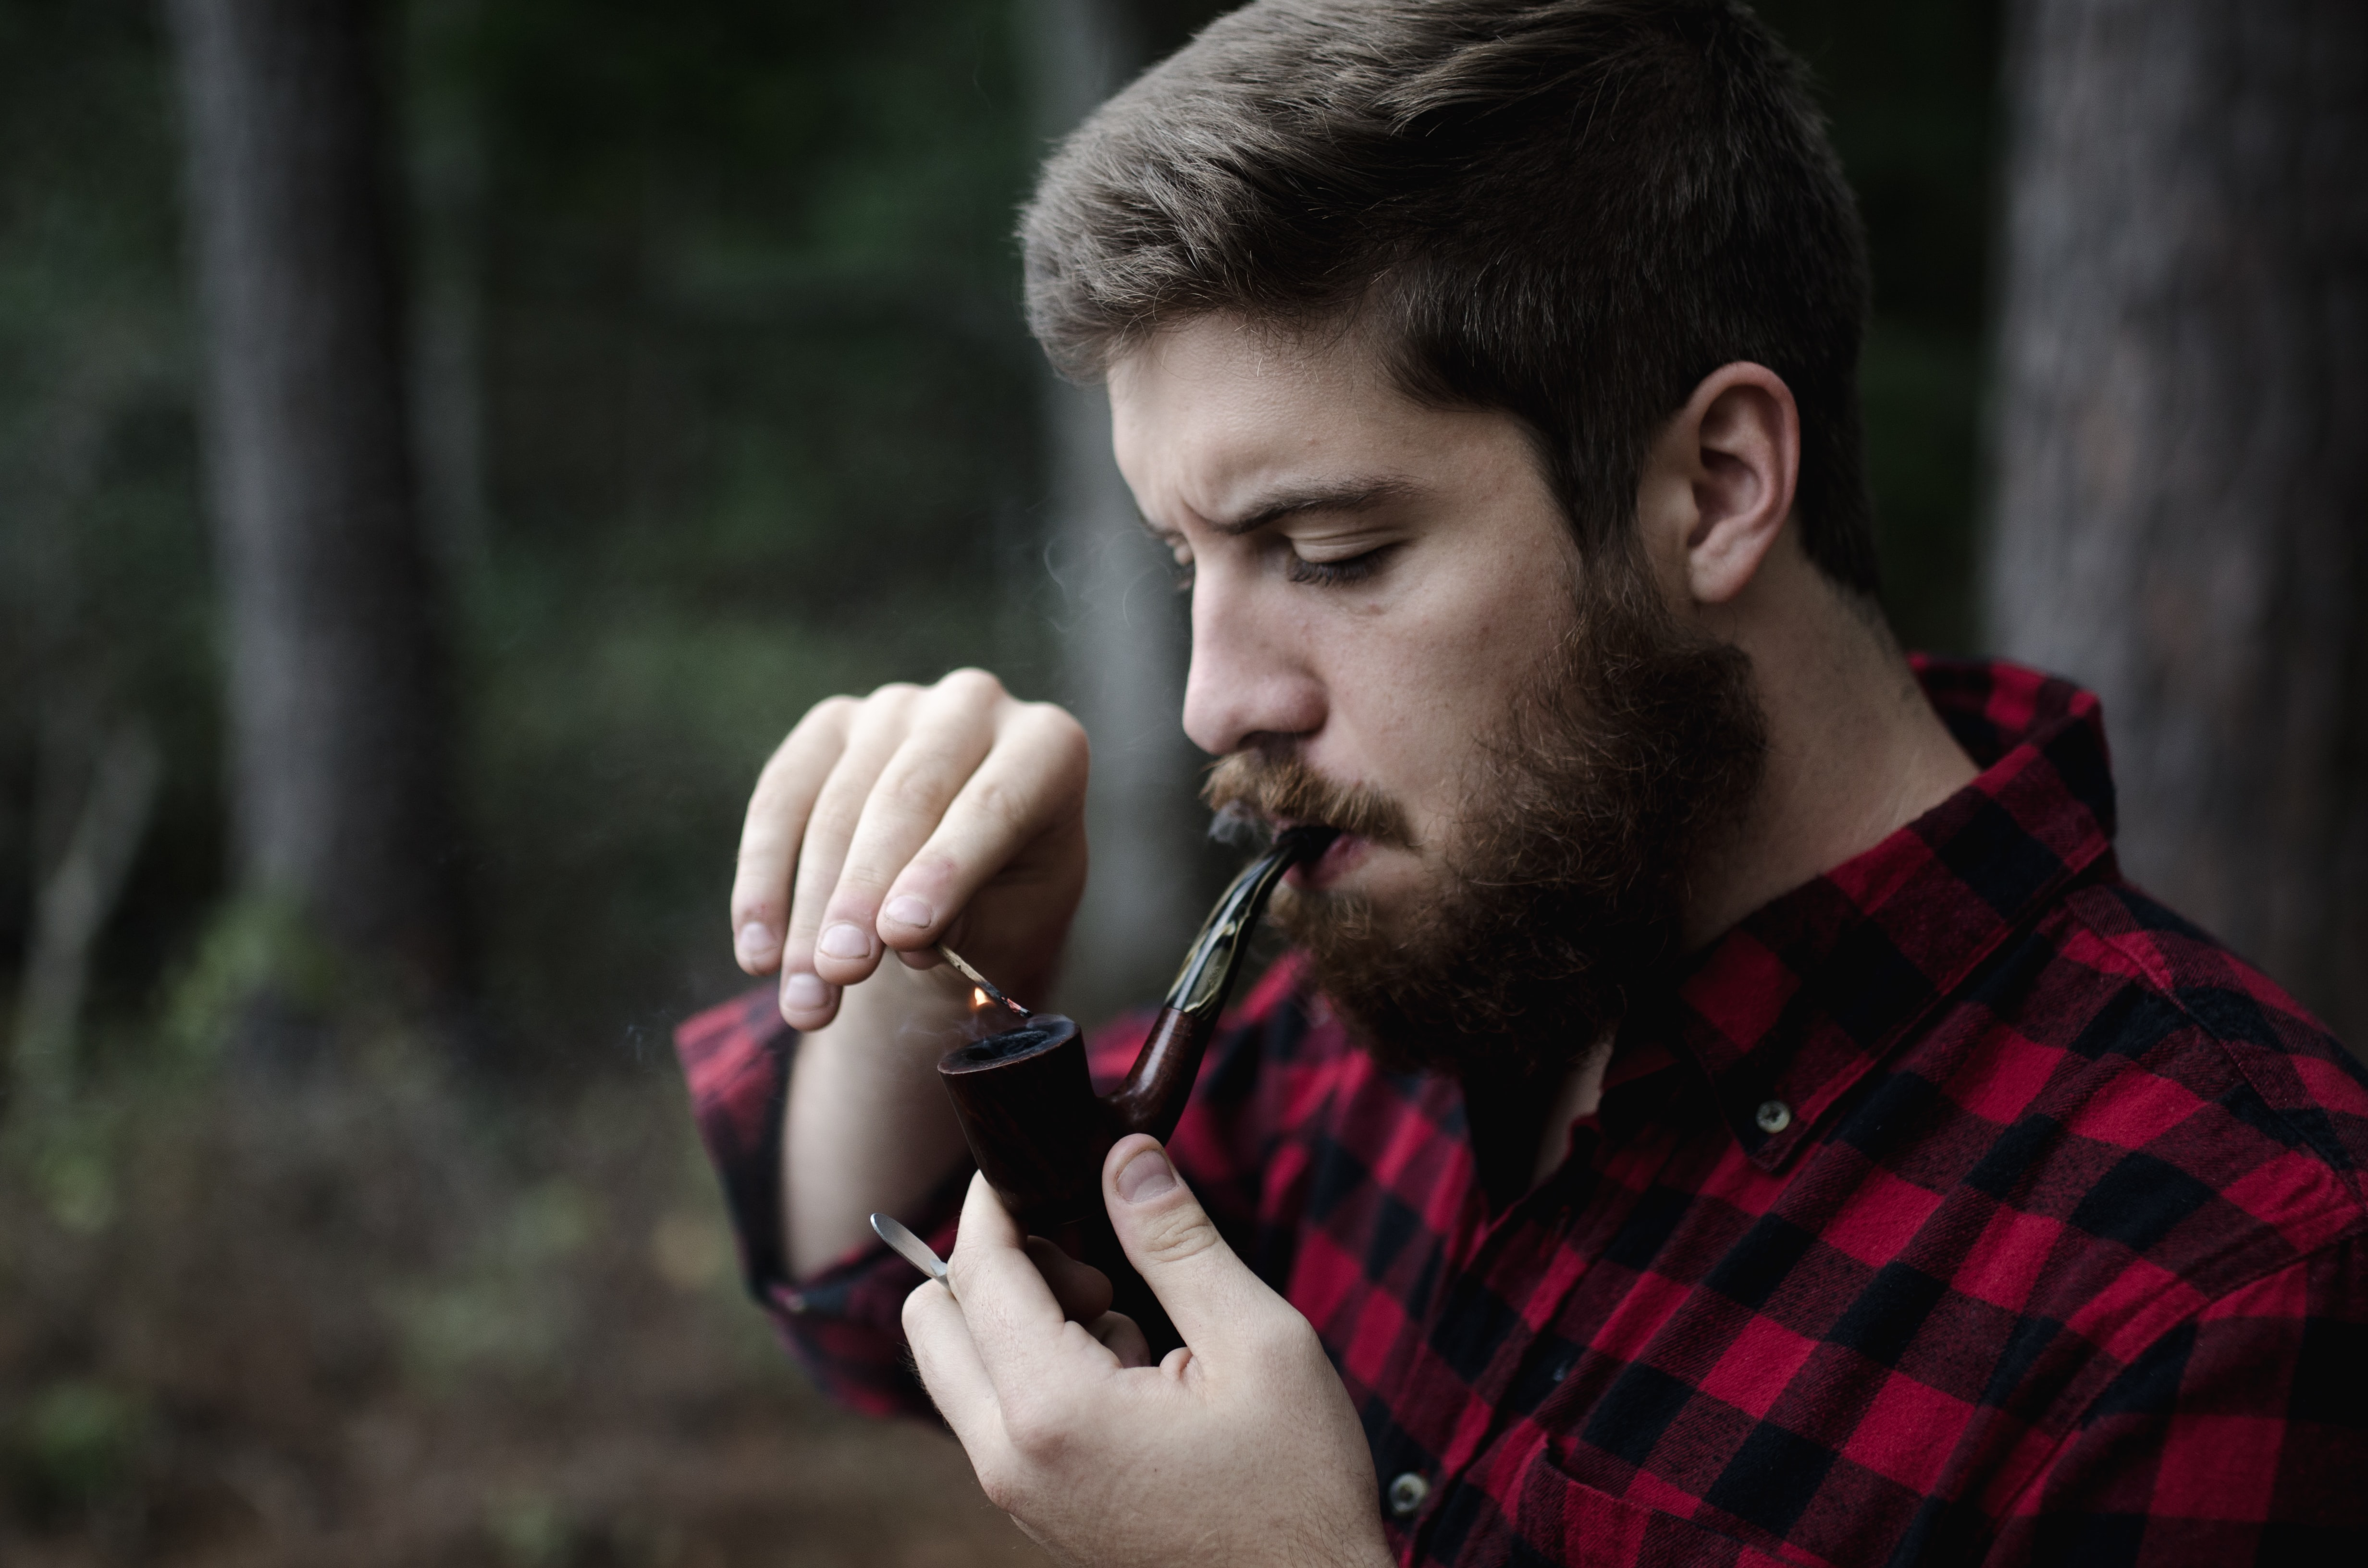 Hipster man in flannel with a beard lighting a pipe